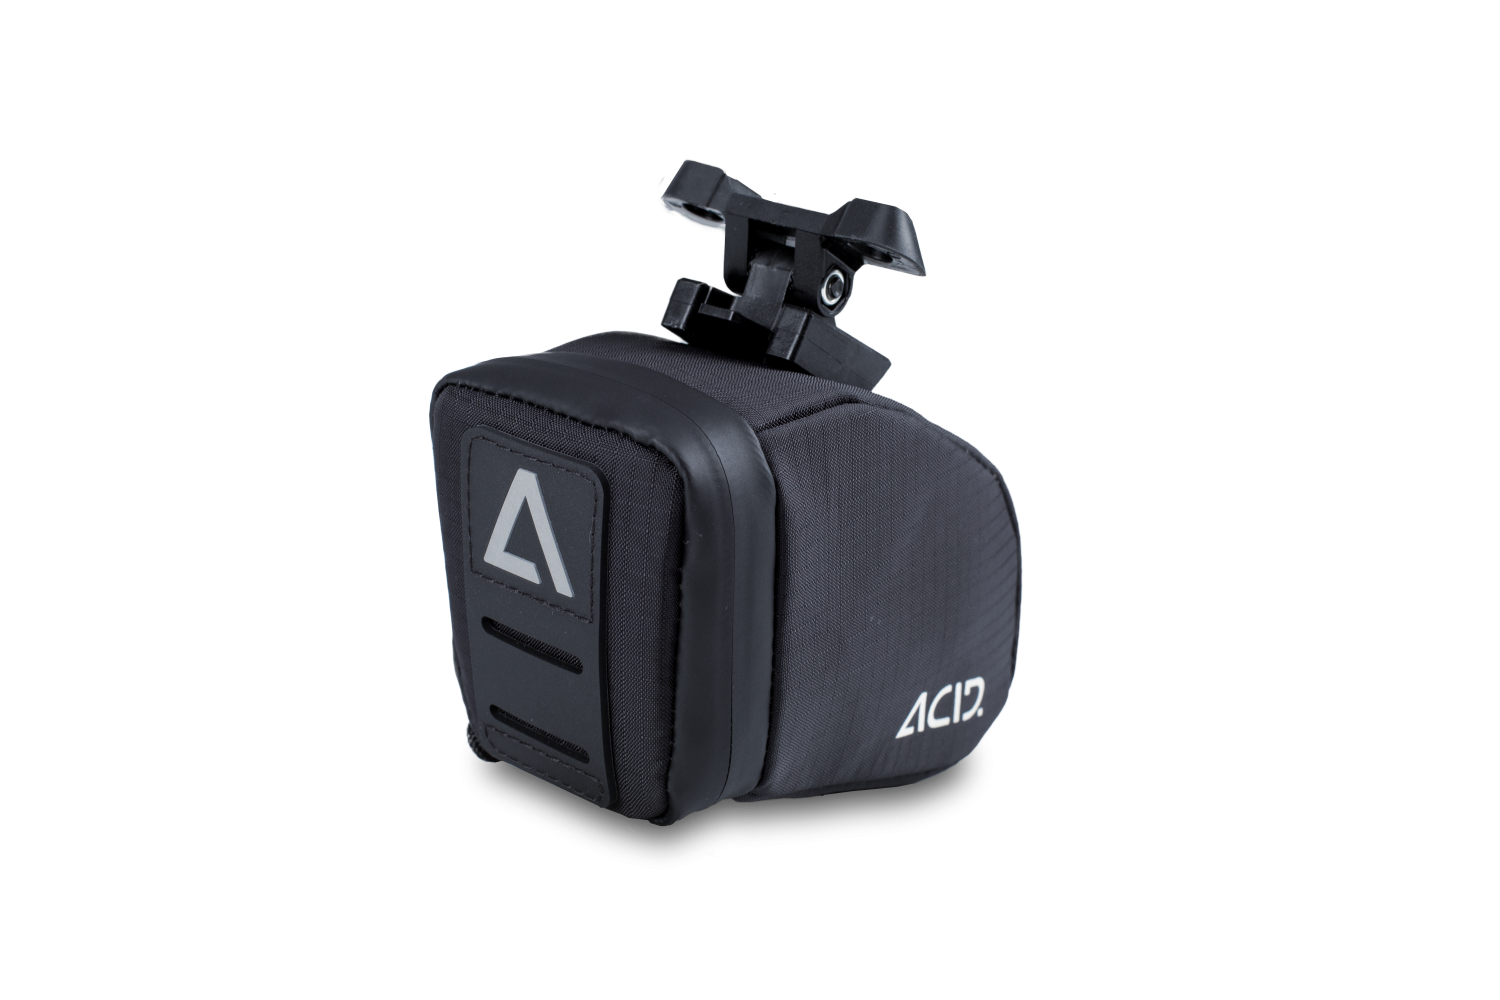 ACID Saddle Bag CLICK S